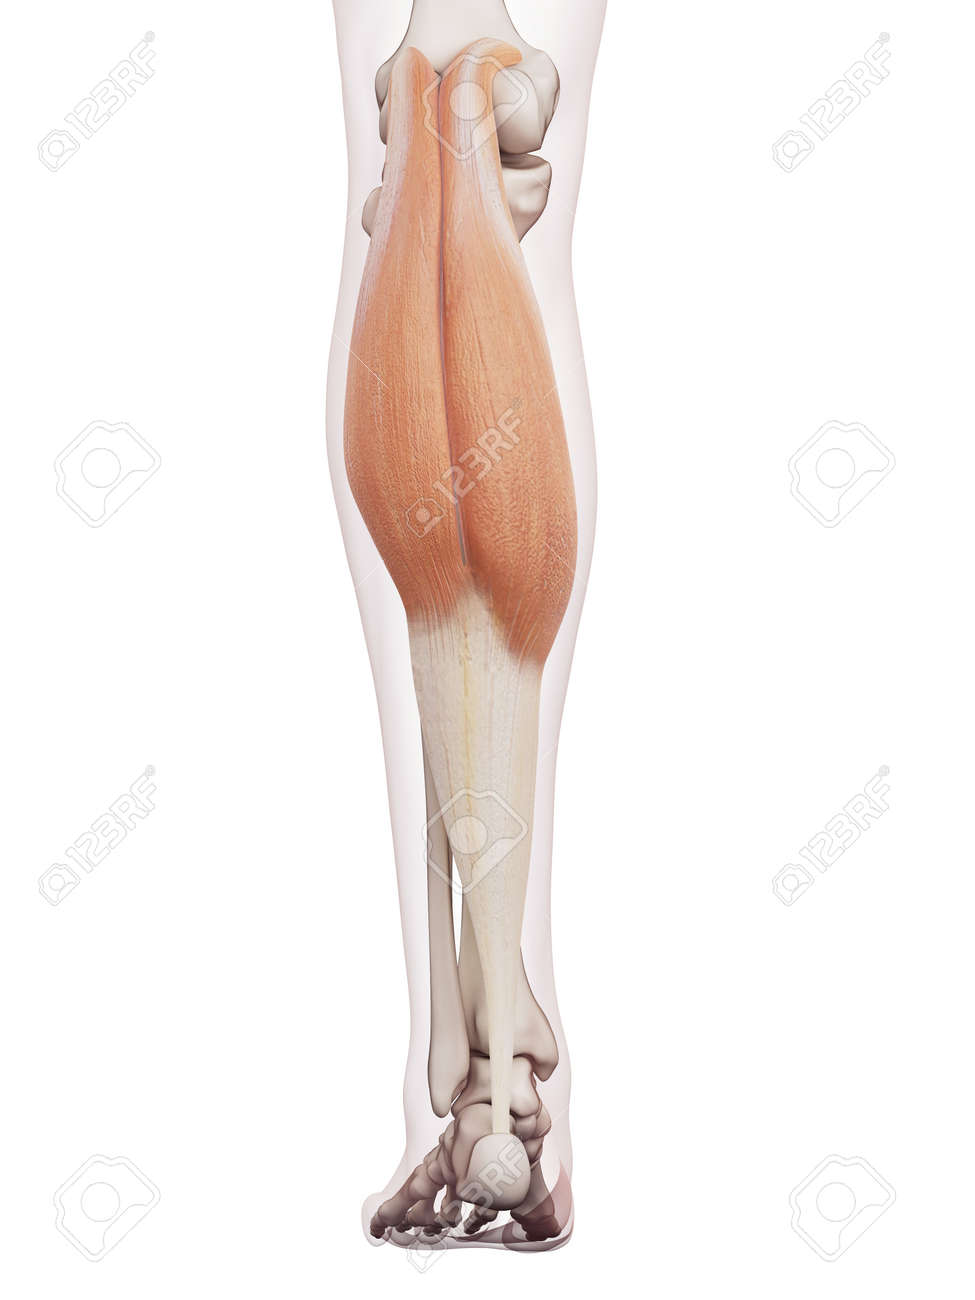 Medically Accurate Muscle Illustration Of The Gastrocnemius Stock ...